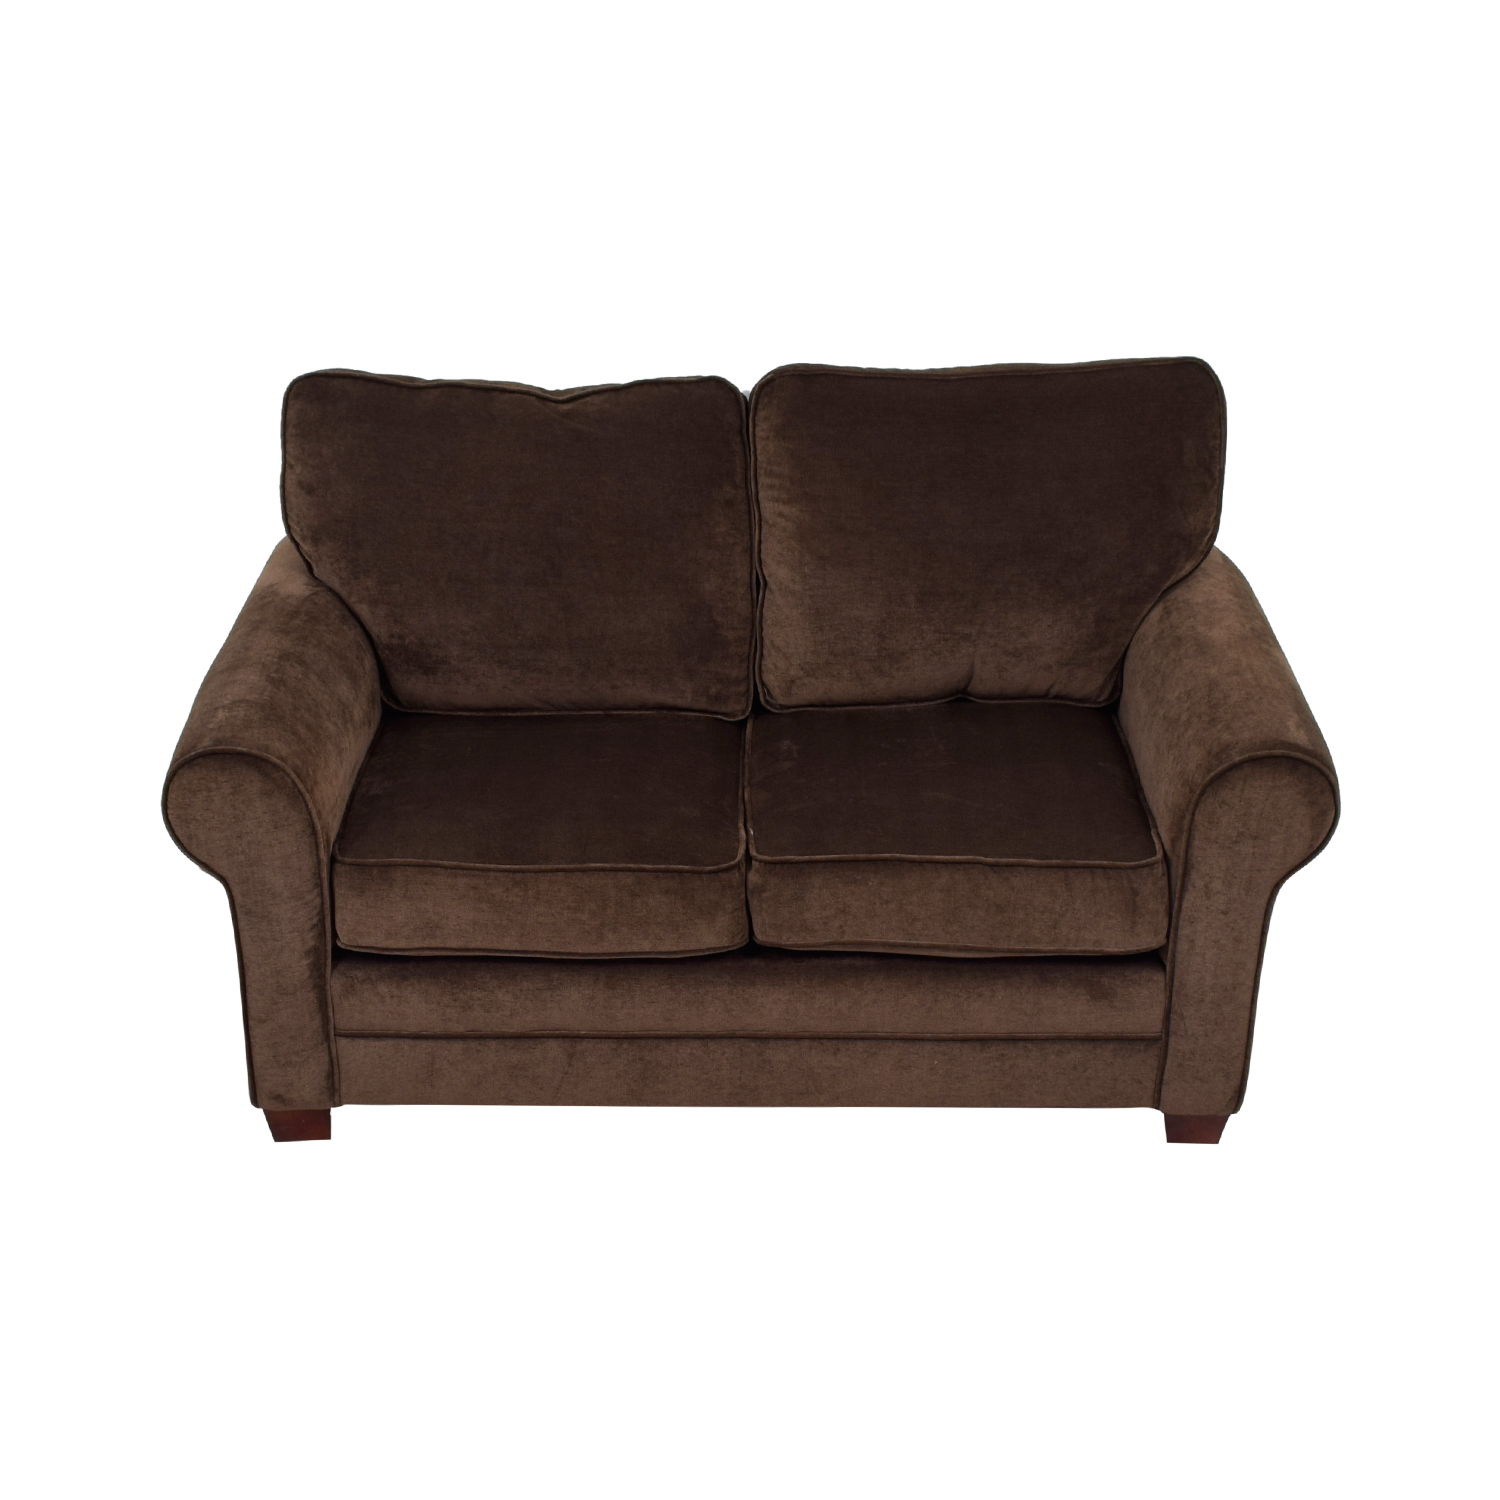 Bob's Furniture Brown Loveseat Bob's Furniture